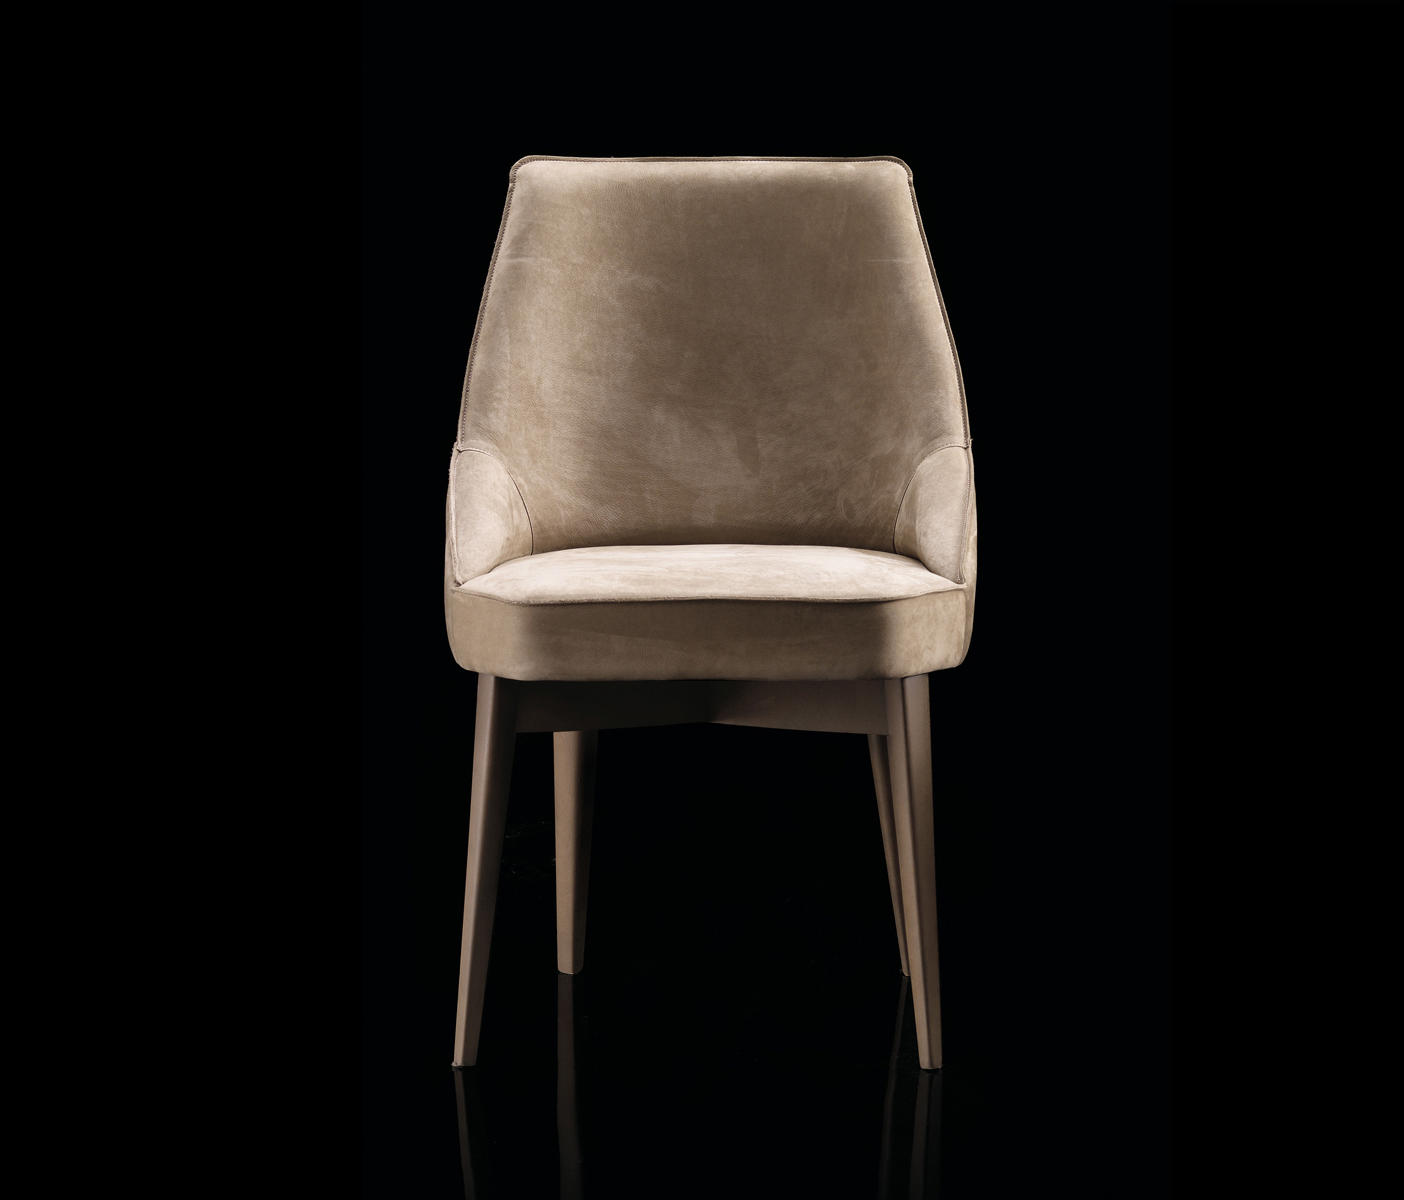 IS A CHAIR Chairs From HENGE Architonic